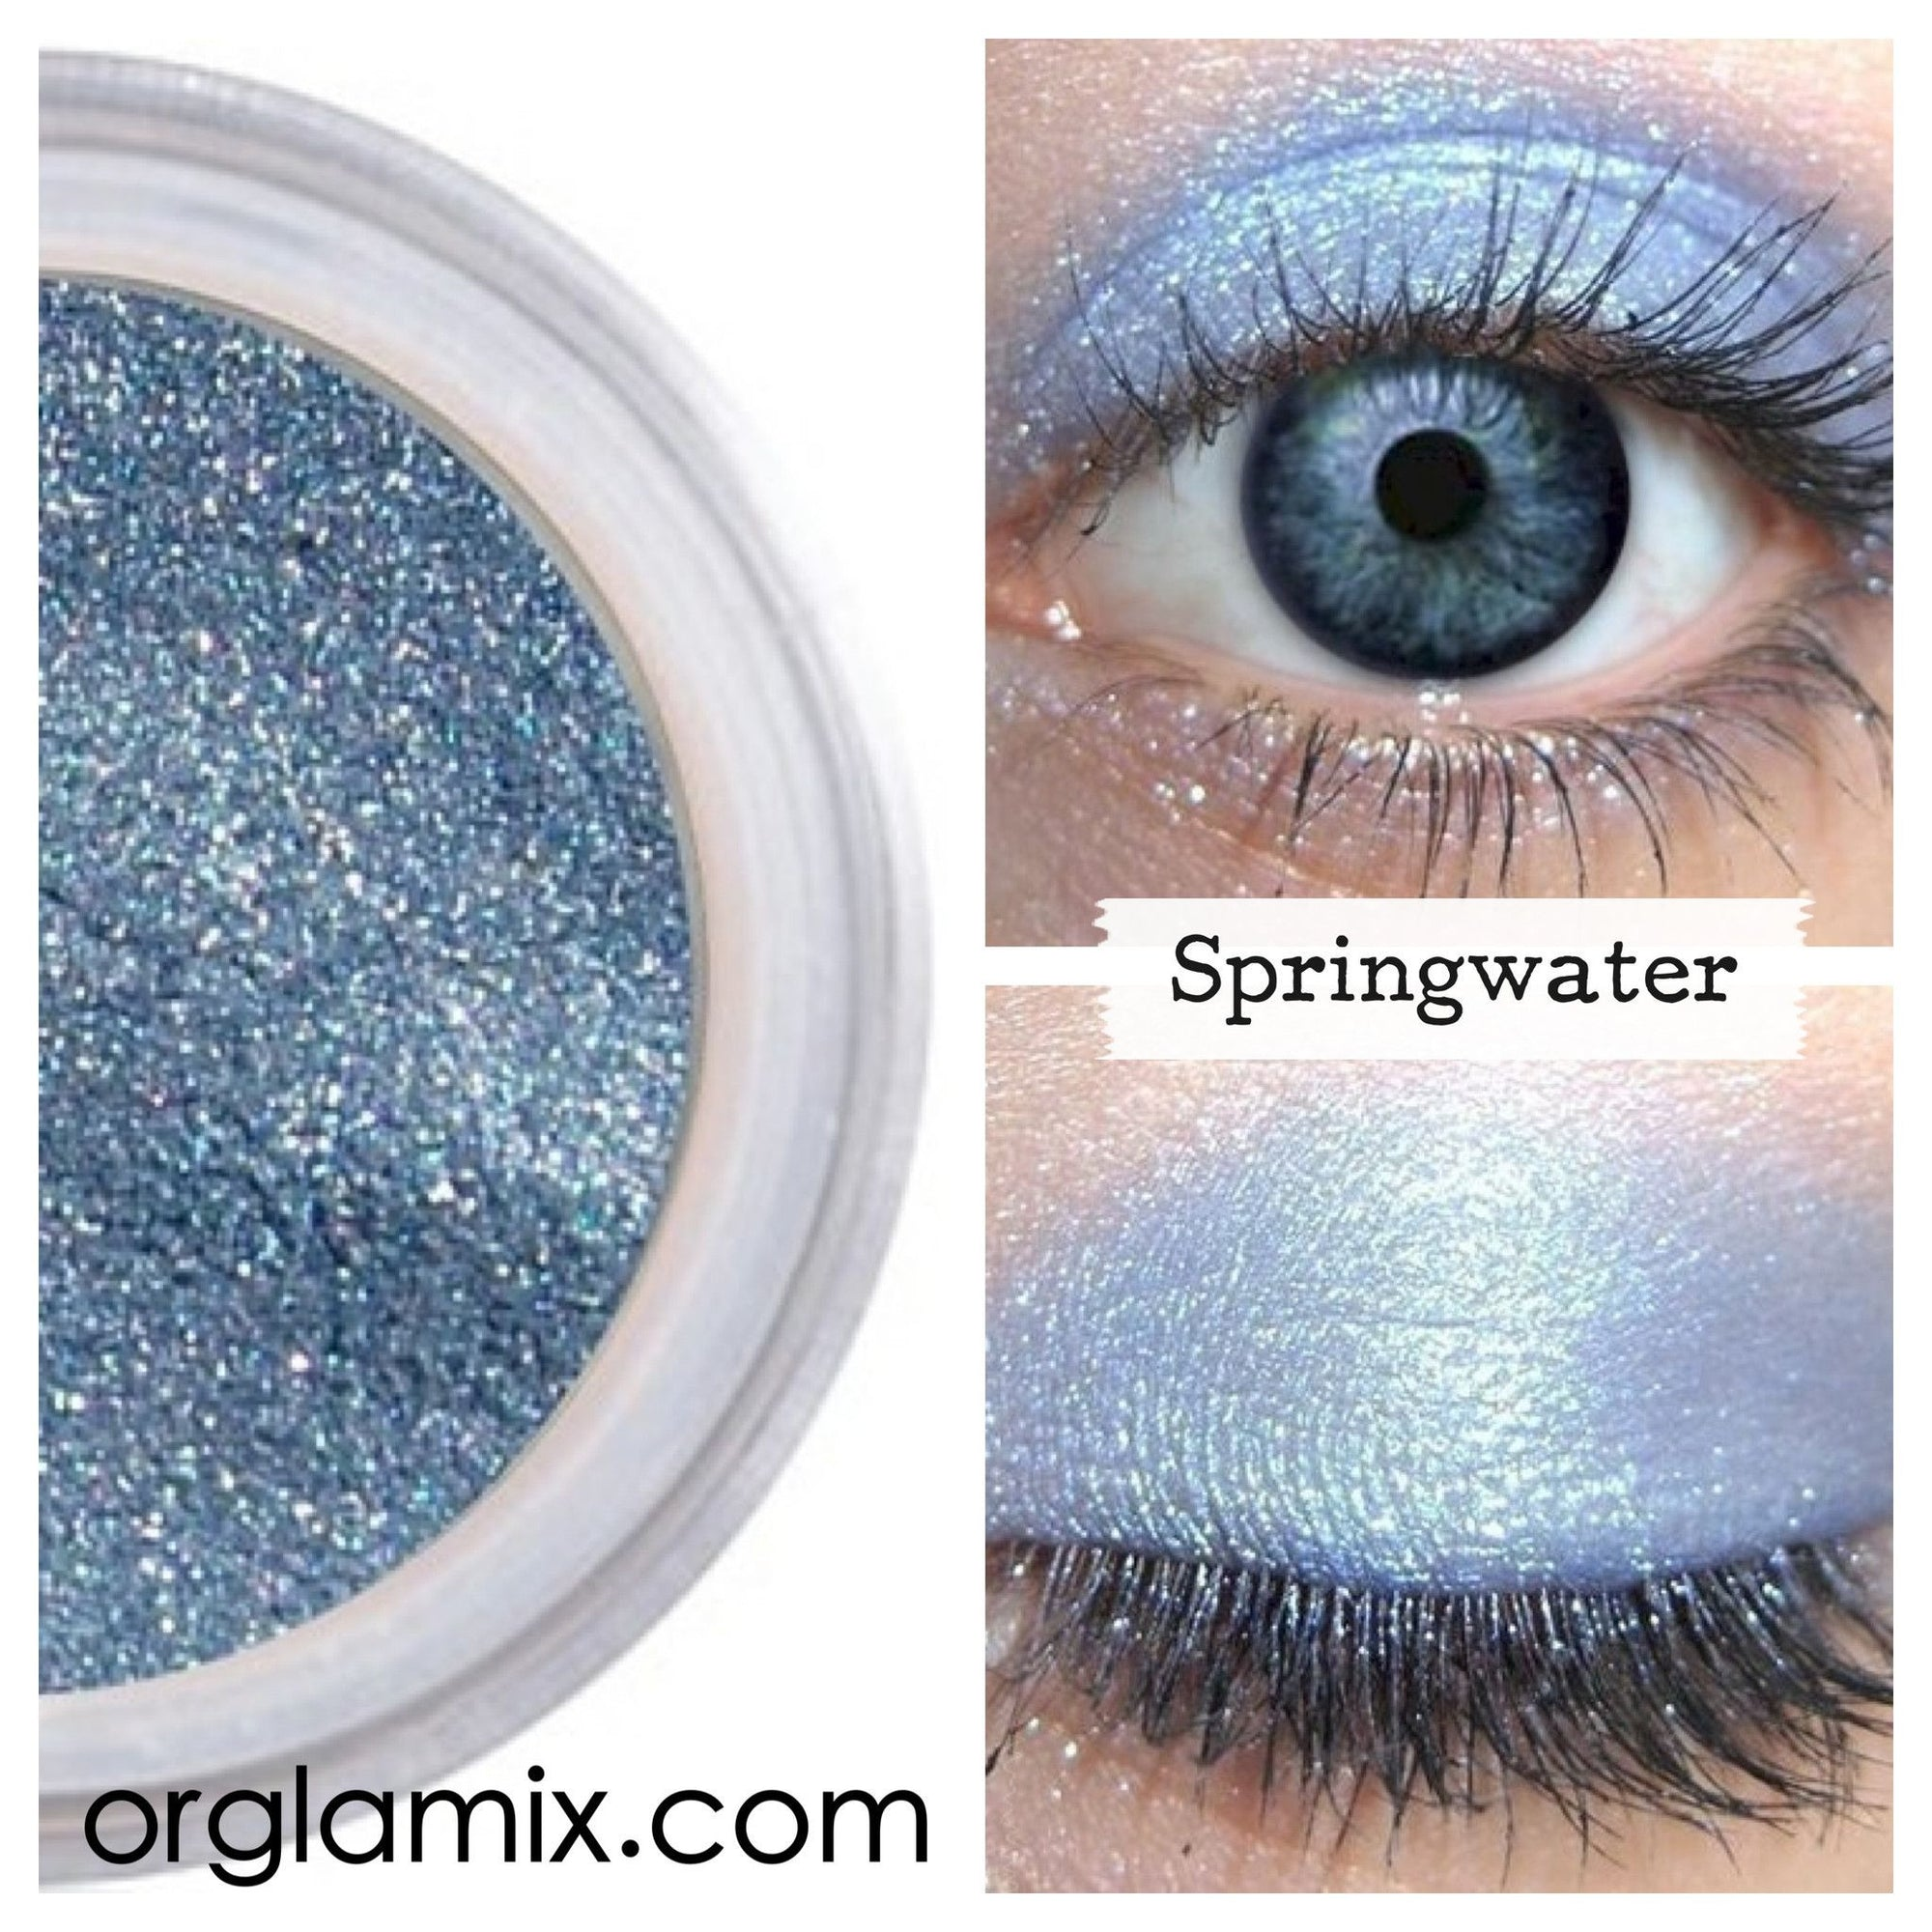 Springwater Eyeshadow - Cruelty Free Makeup, Best Mineral Makeup, Natural Beauty Products, Orglamix